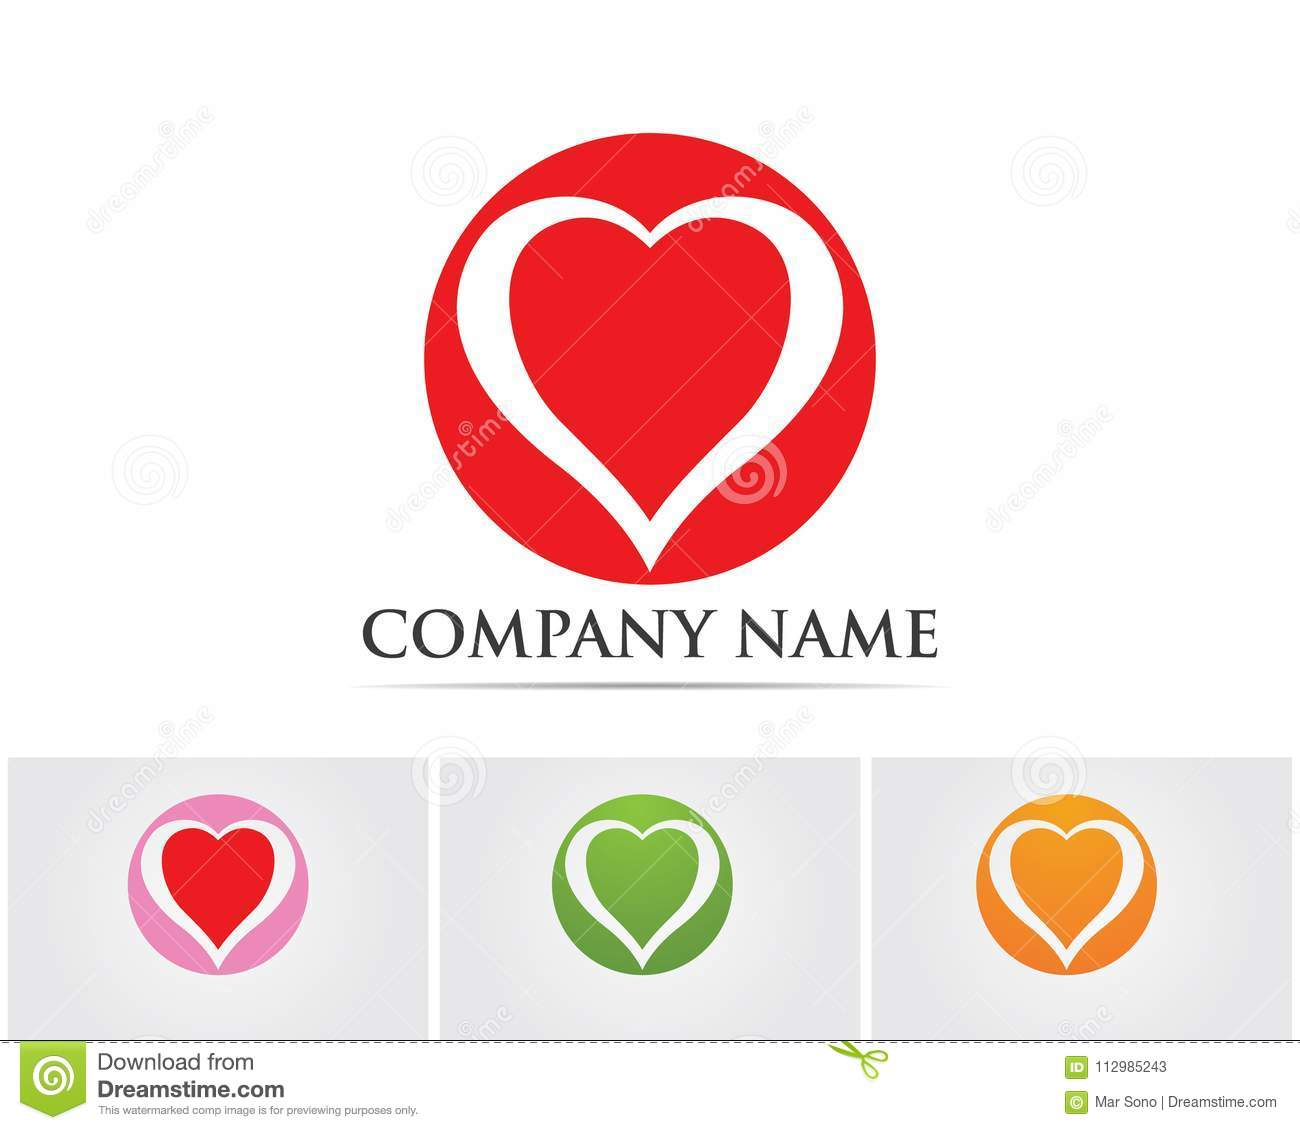 Love Logo and symbols Vector Template icons app..